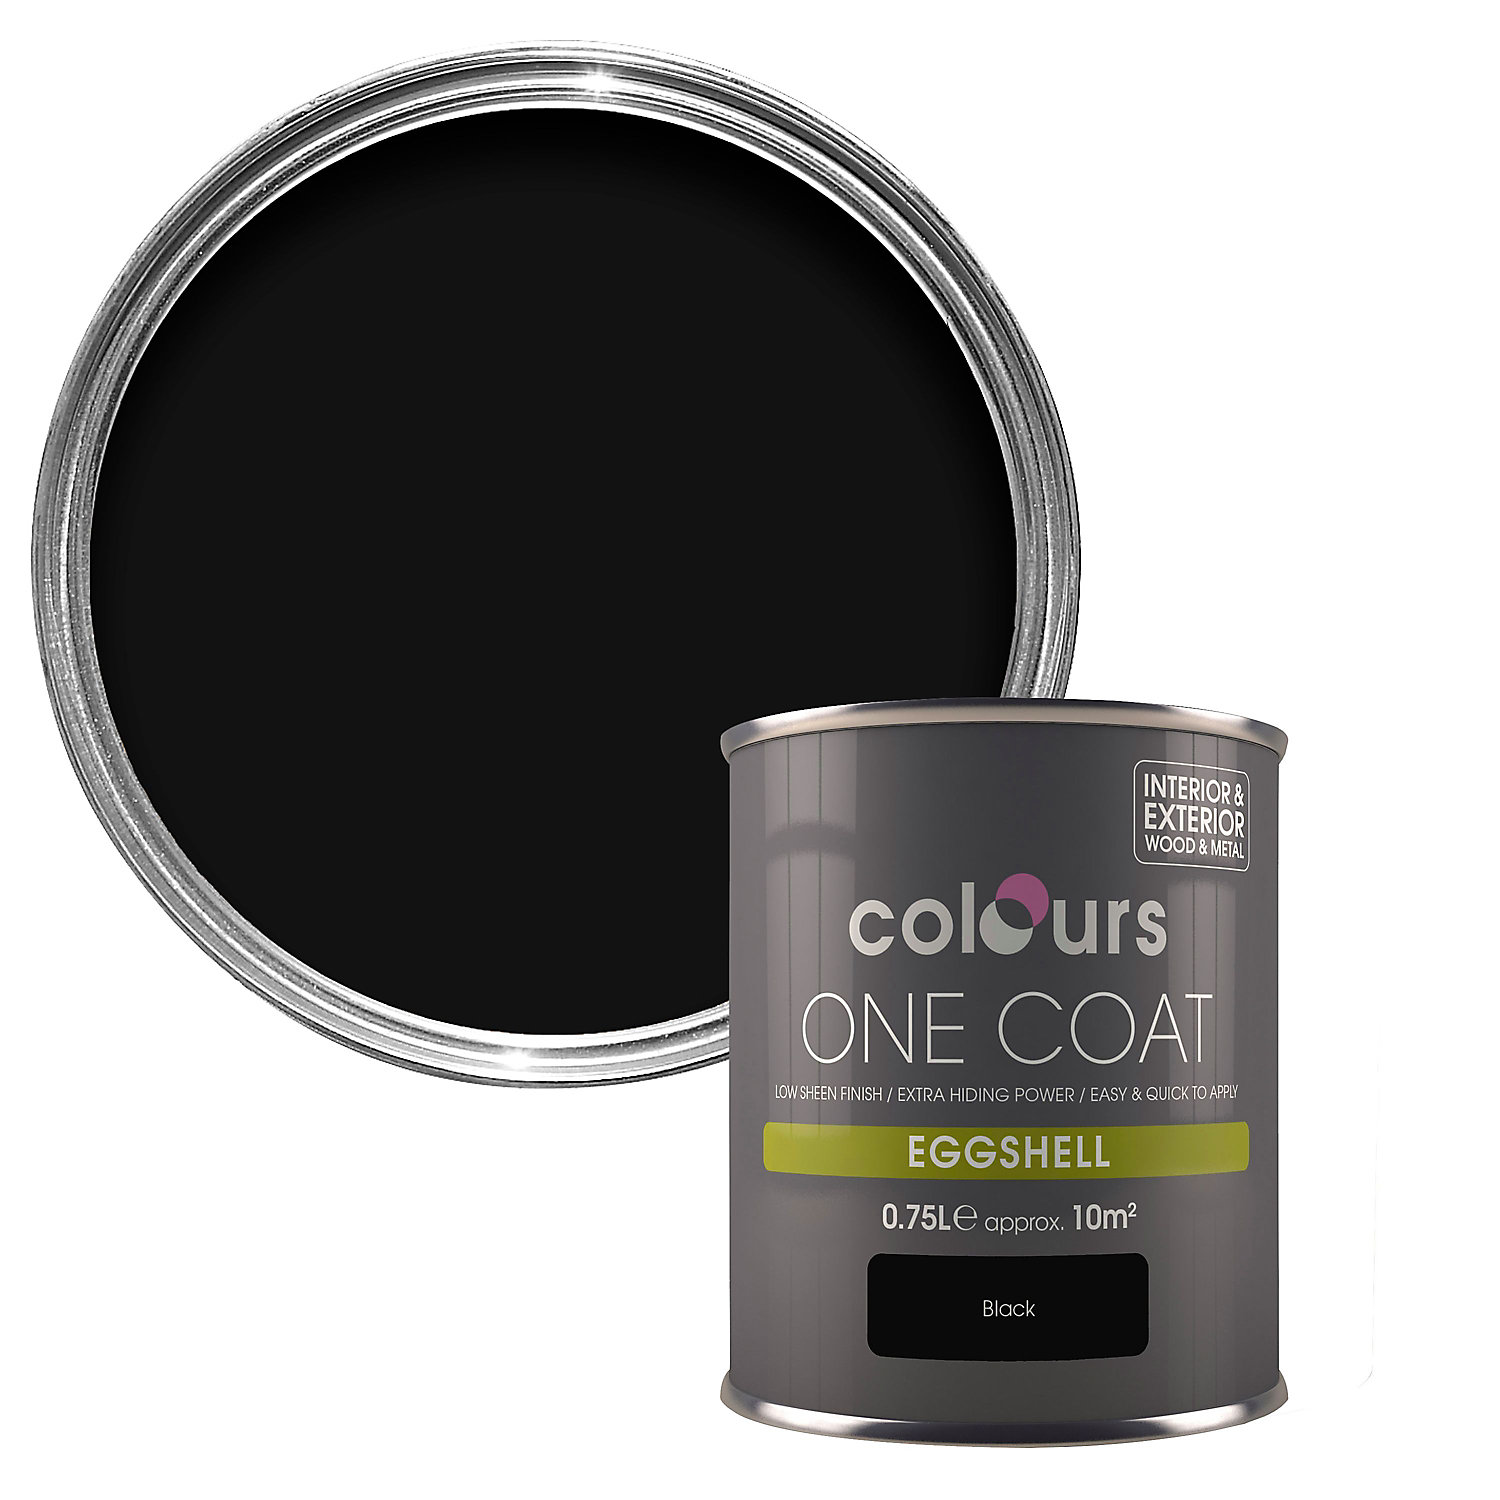 Colours One coat Black Eggshell Wood & metal paint 750 ml